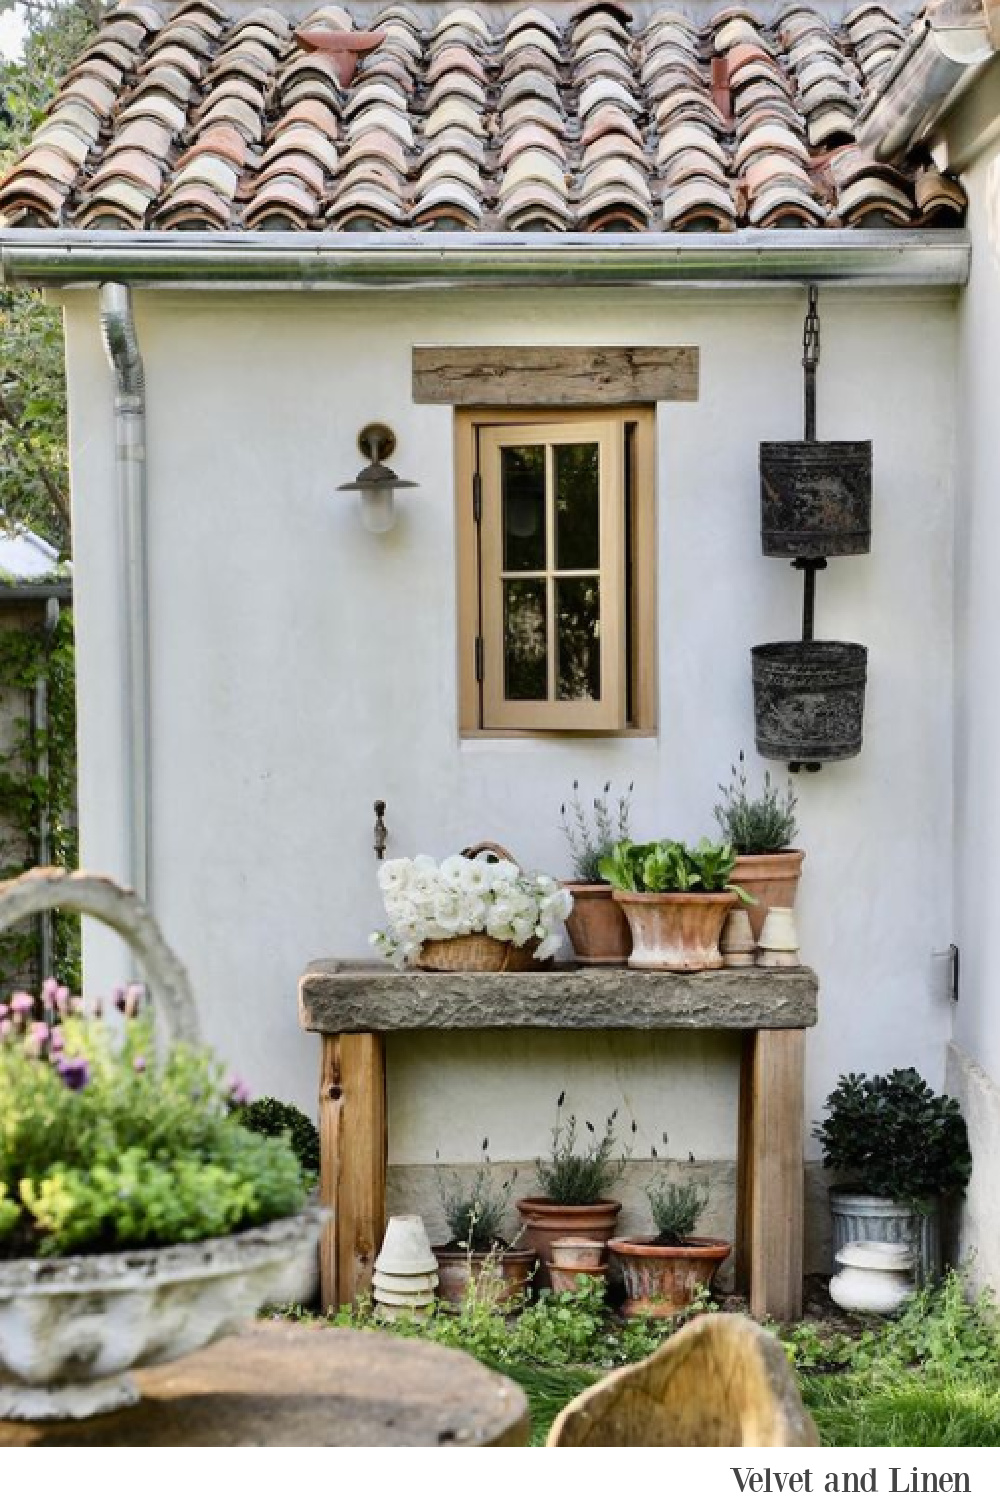 French country style at Patina Farm where pots are gathered on a potting shed - Velvet and Linen.